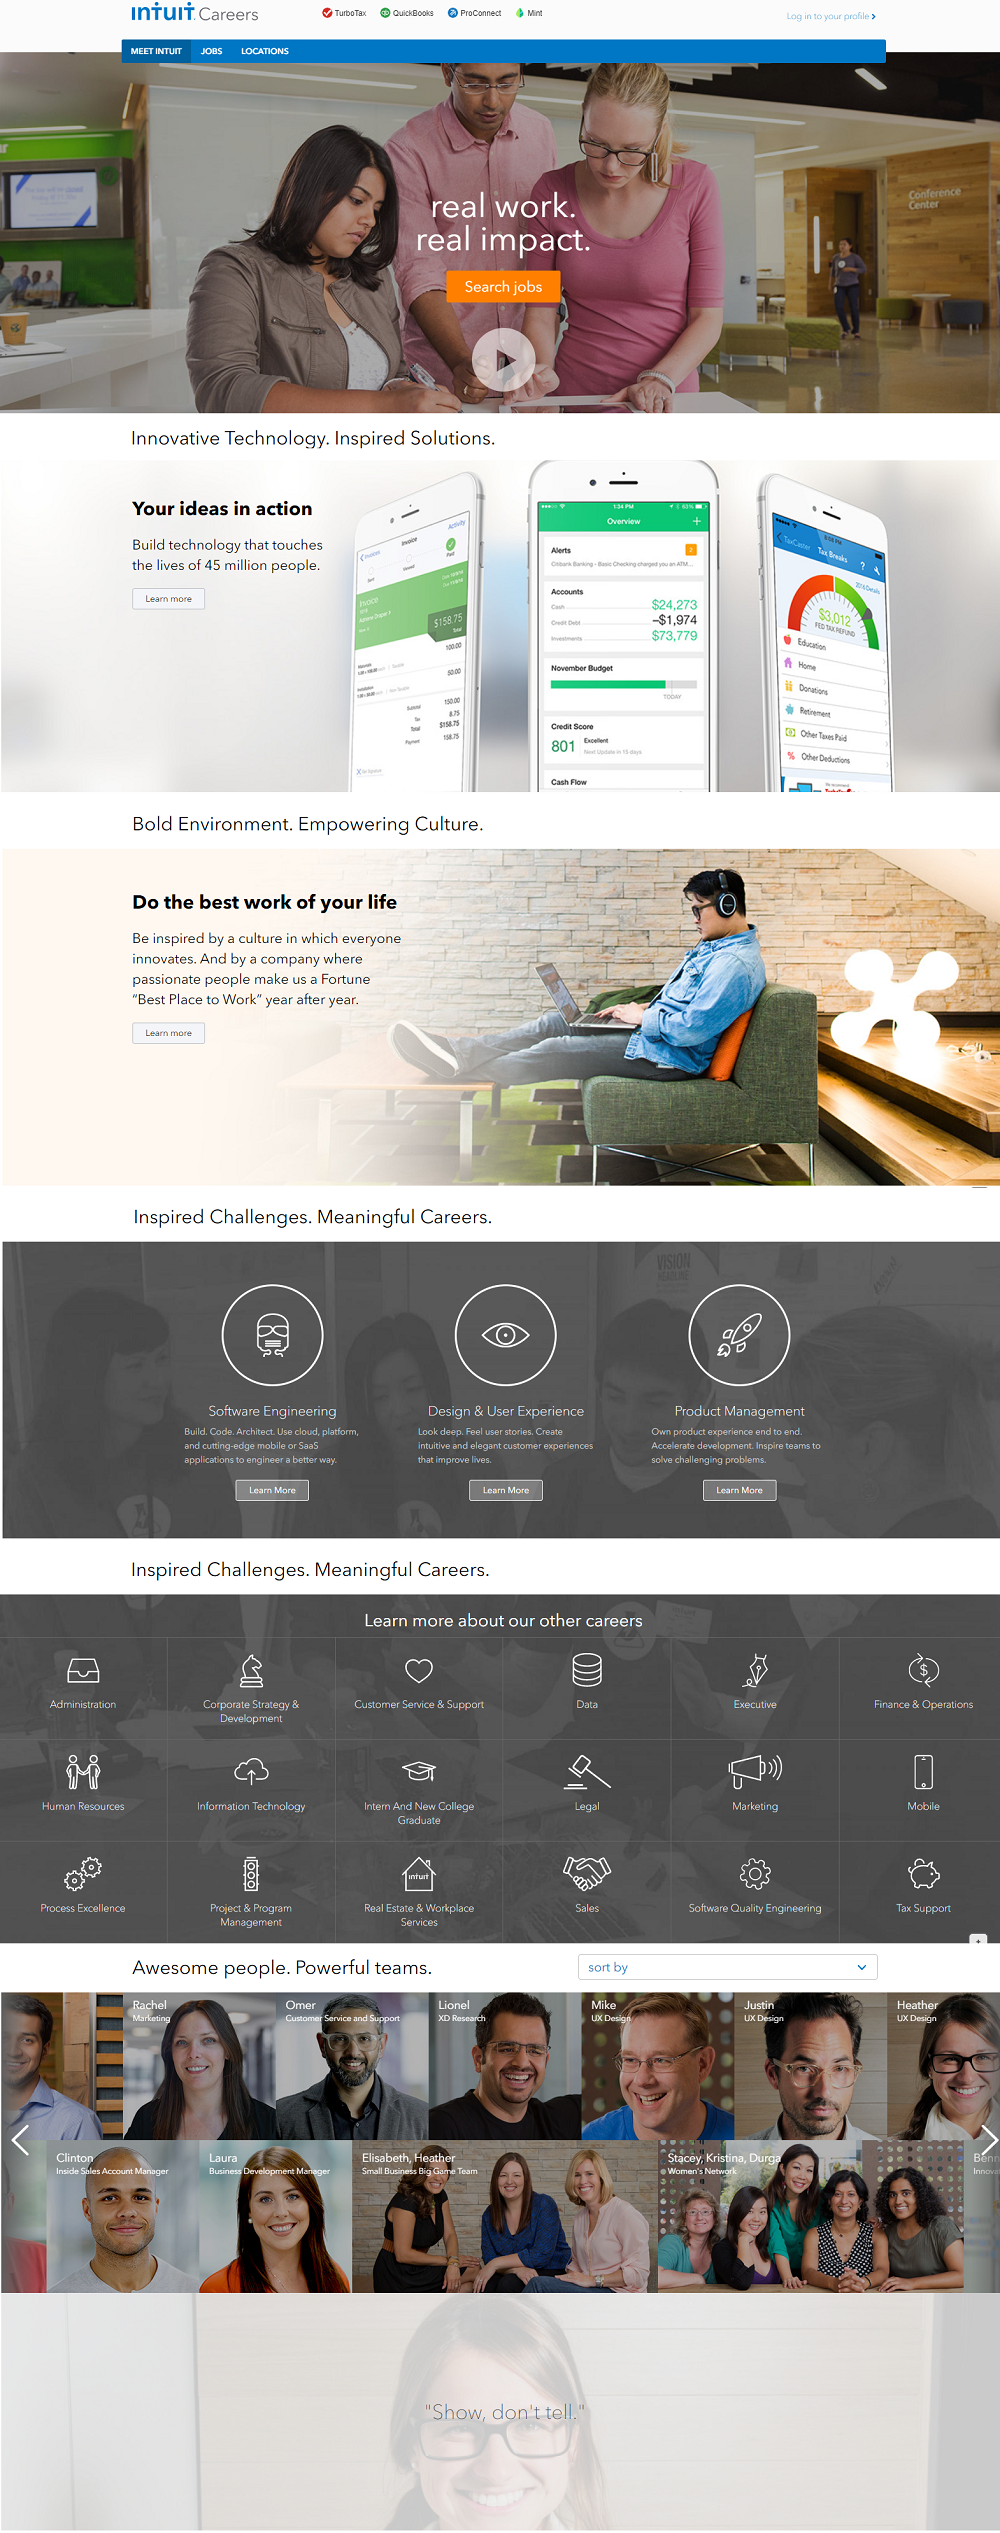 Intuit Company Career Page